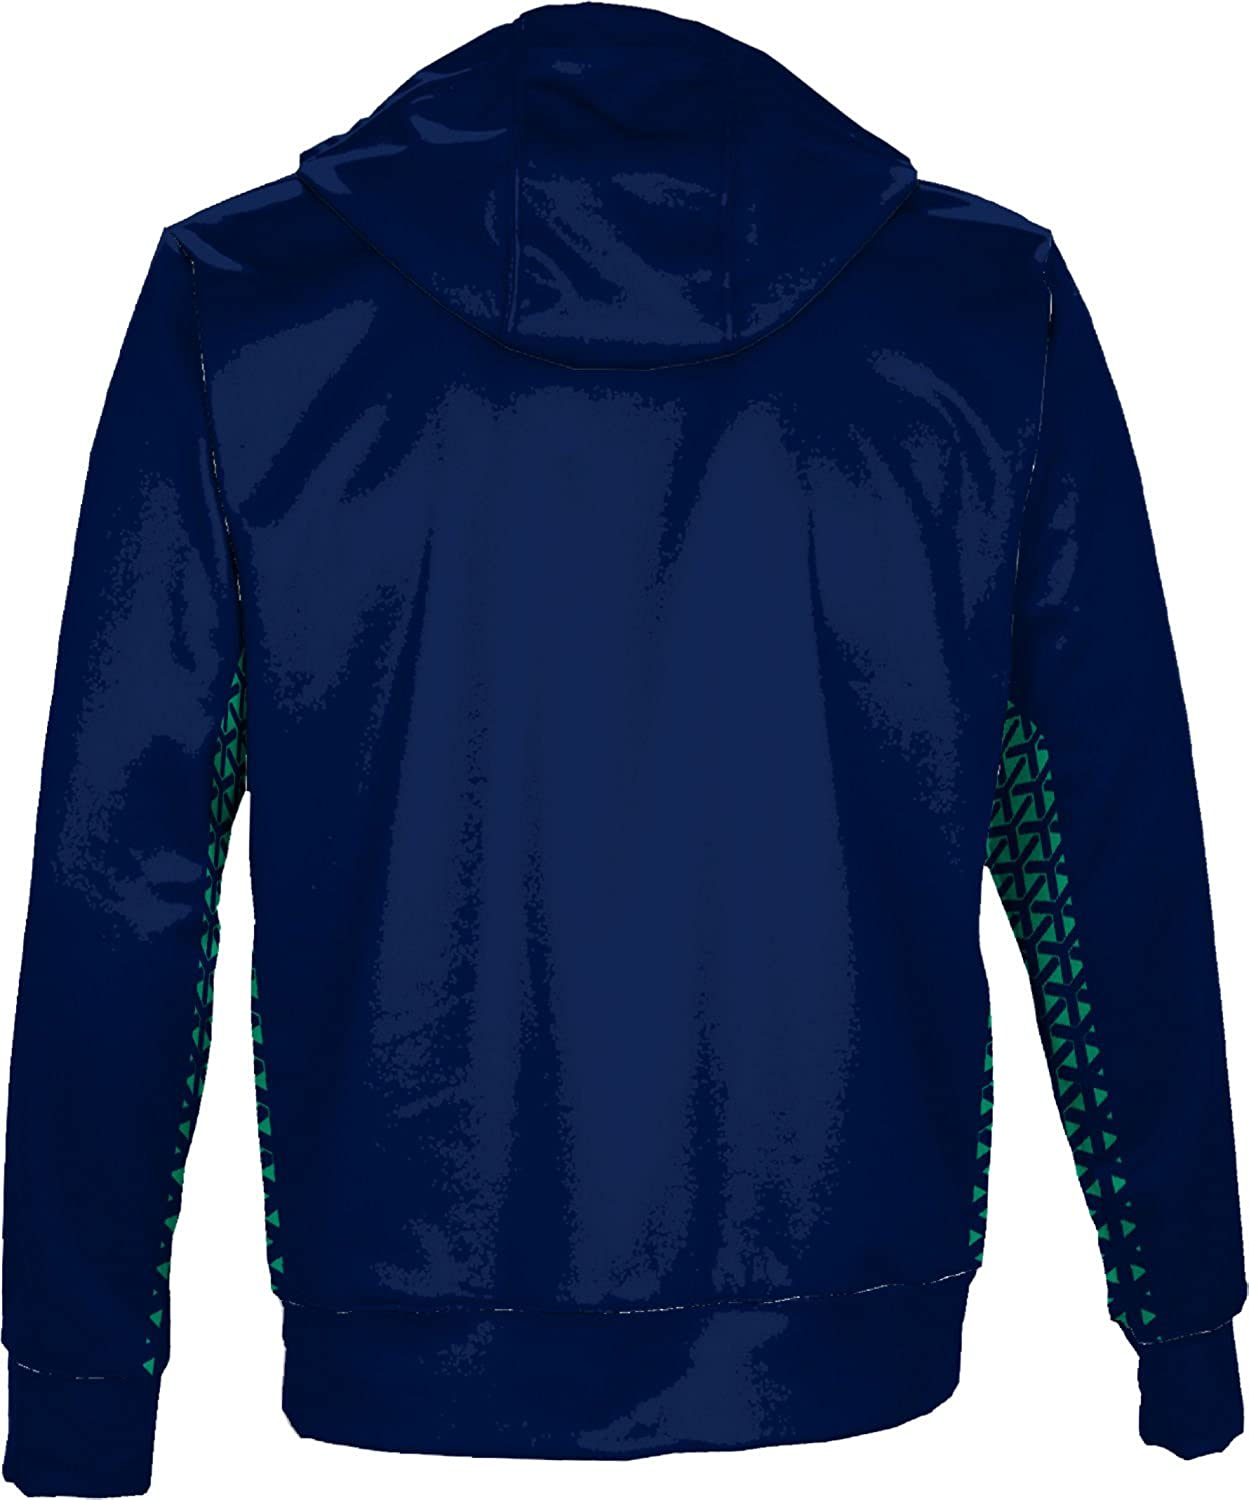 ProSphere University of West Florida Boys Hoodie Sweatshirt Geometric